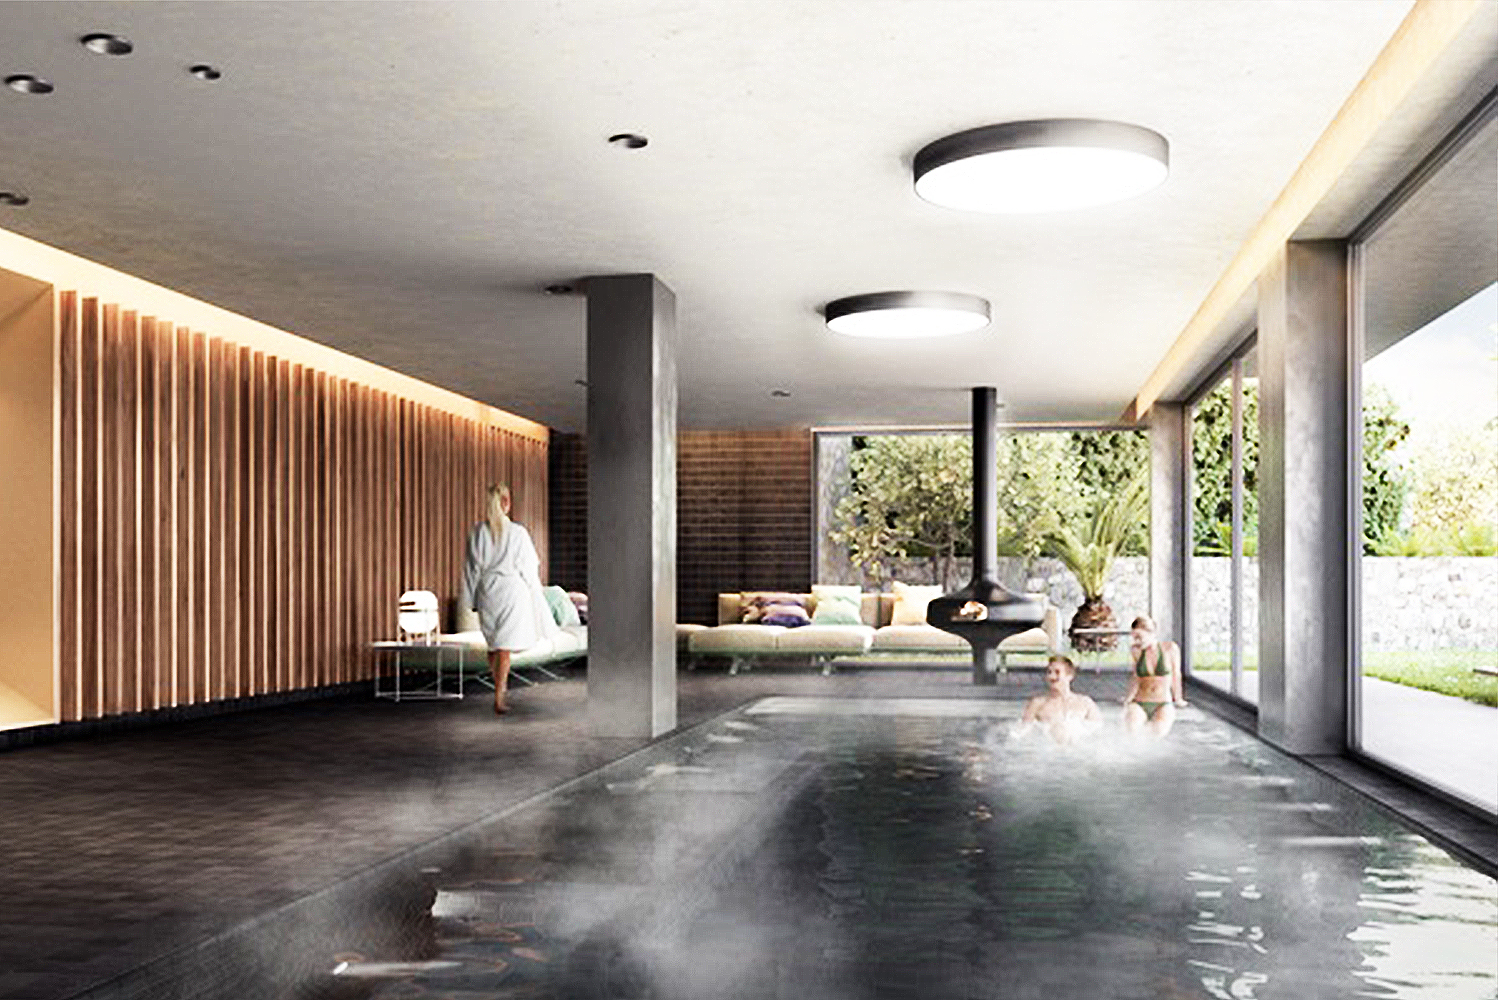 Designed by Forteza + Aparicio Interiores, the new spa will have contemporary design elements in wood and stone.